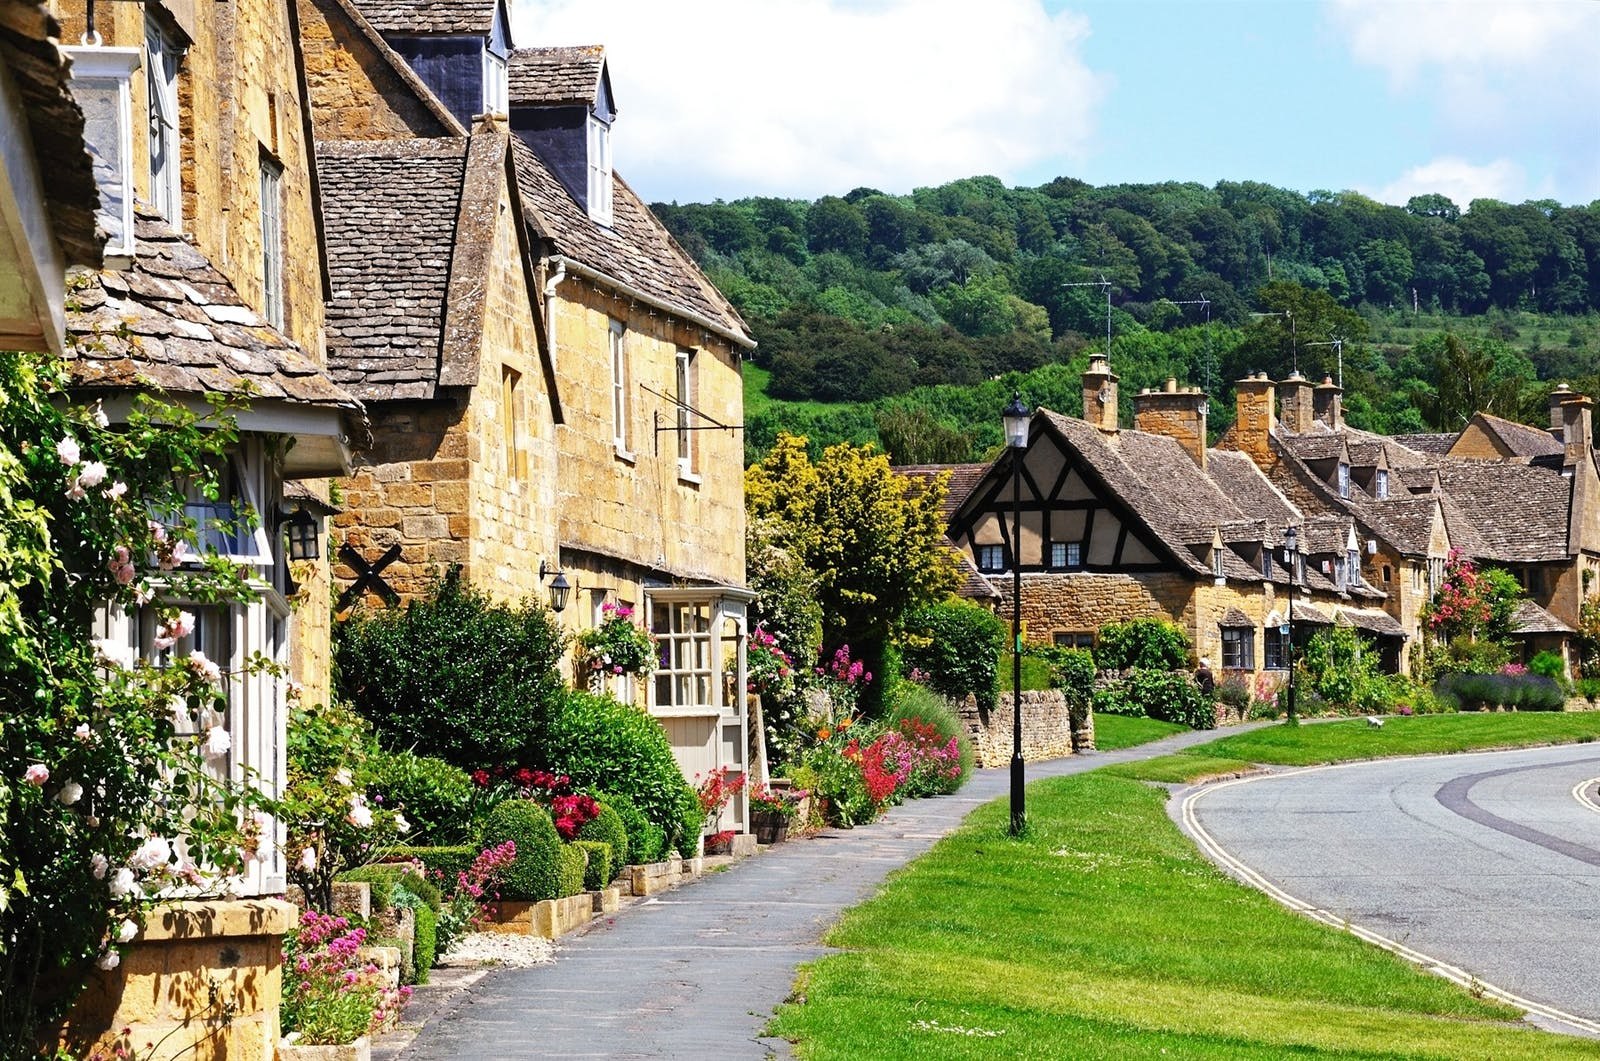 Broadway Village by the Foxhill Manor, Farncombe Estate, England, UK